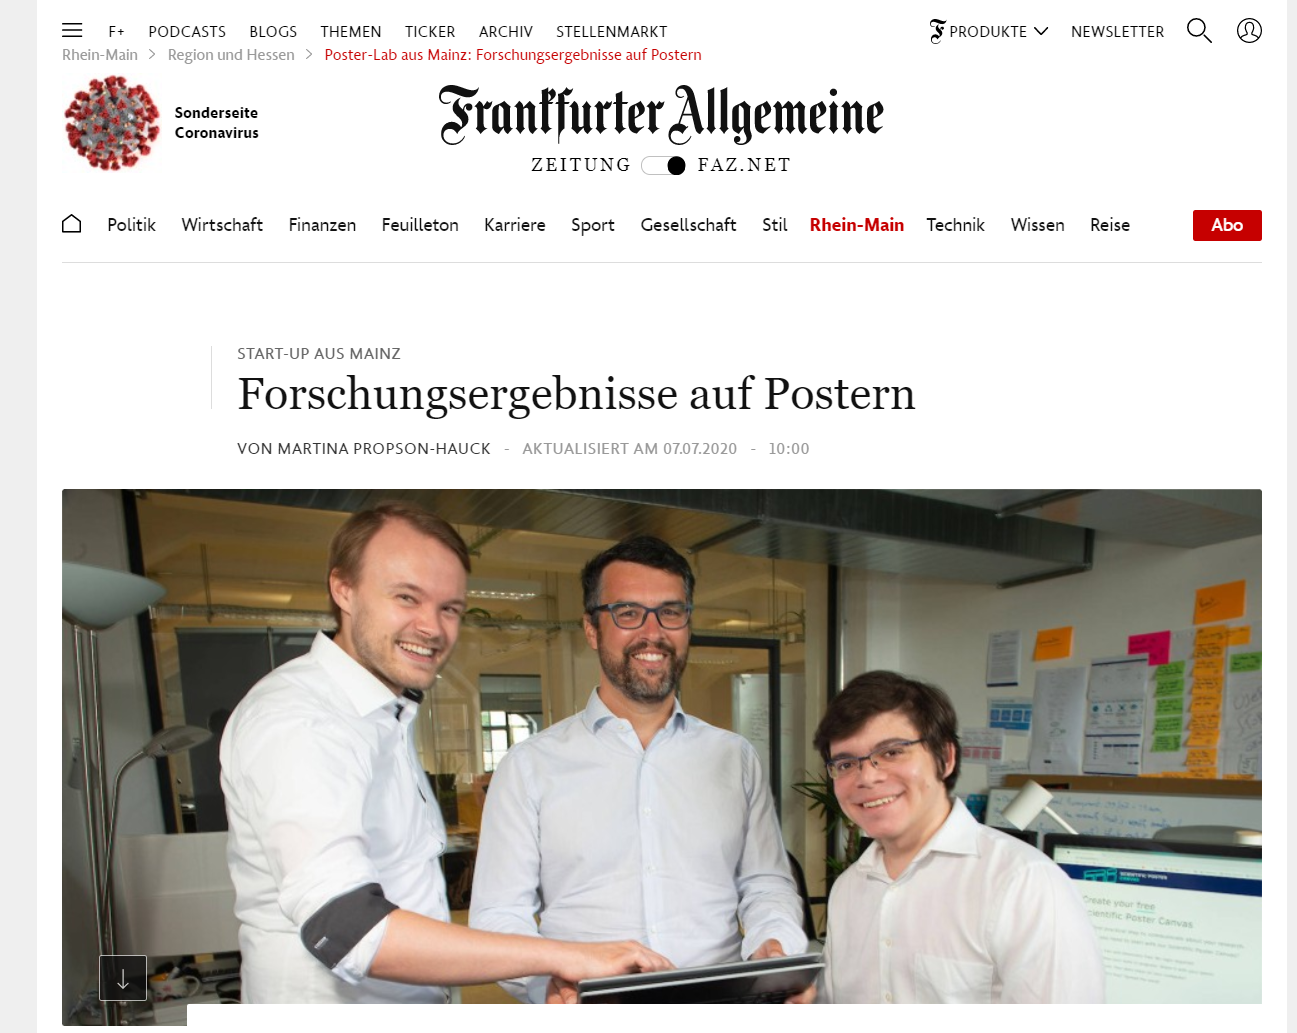 Leading German Media (FAZ) talking bout PosterLab, putting PosterLab on the map